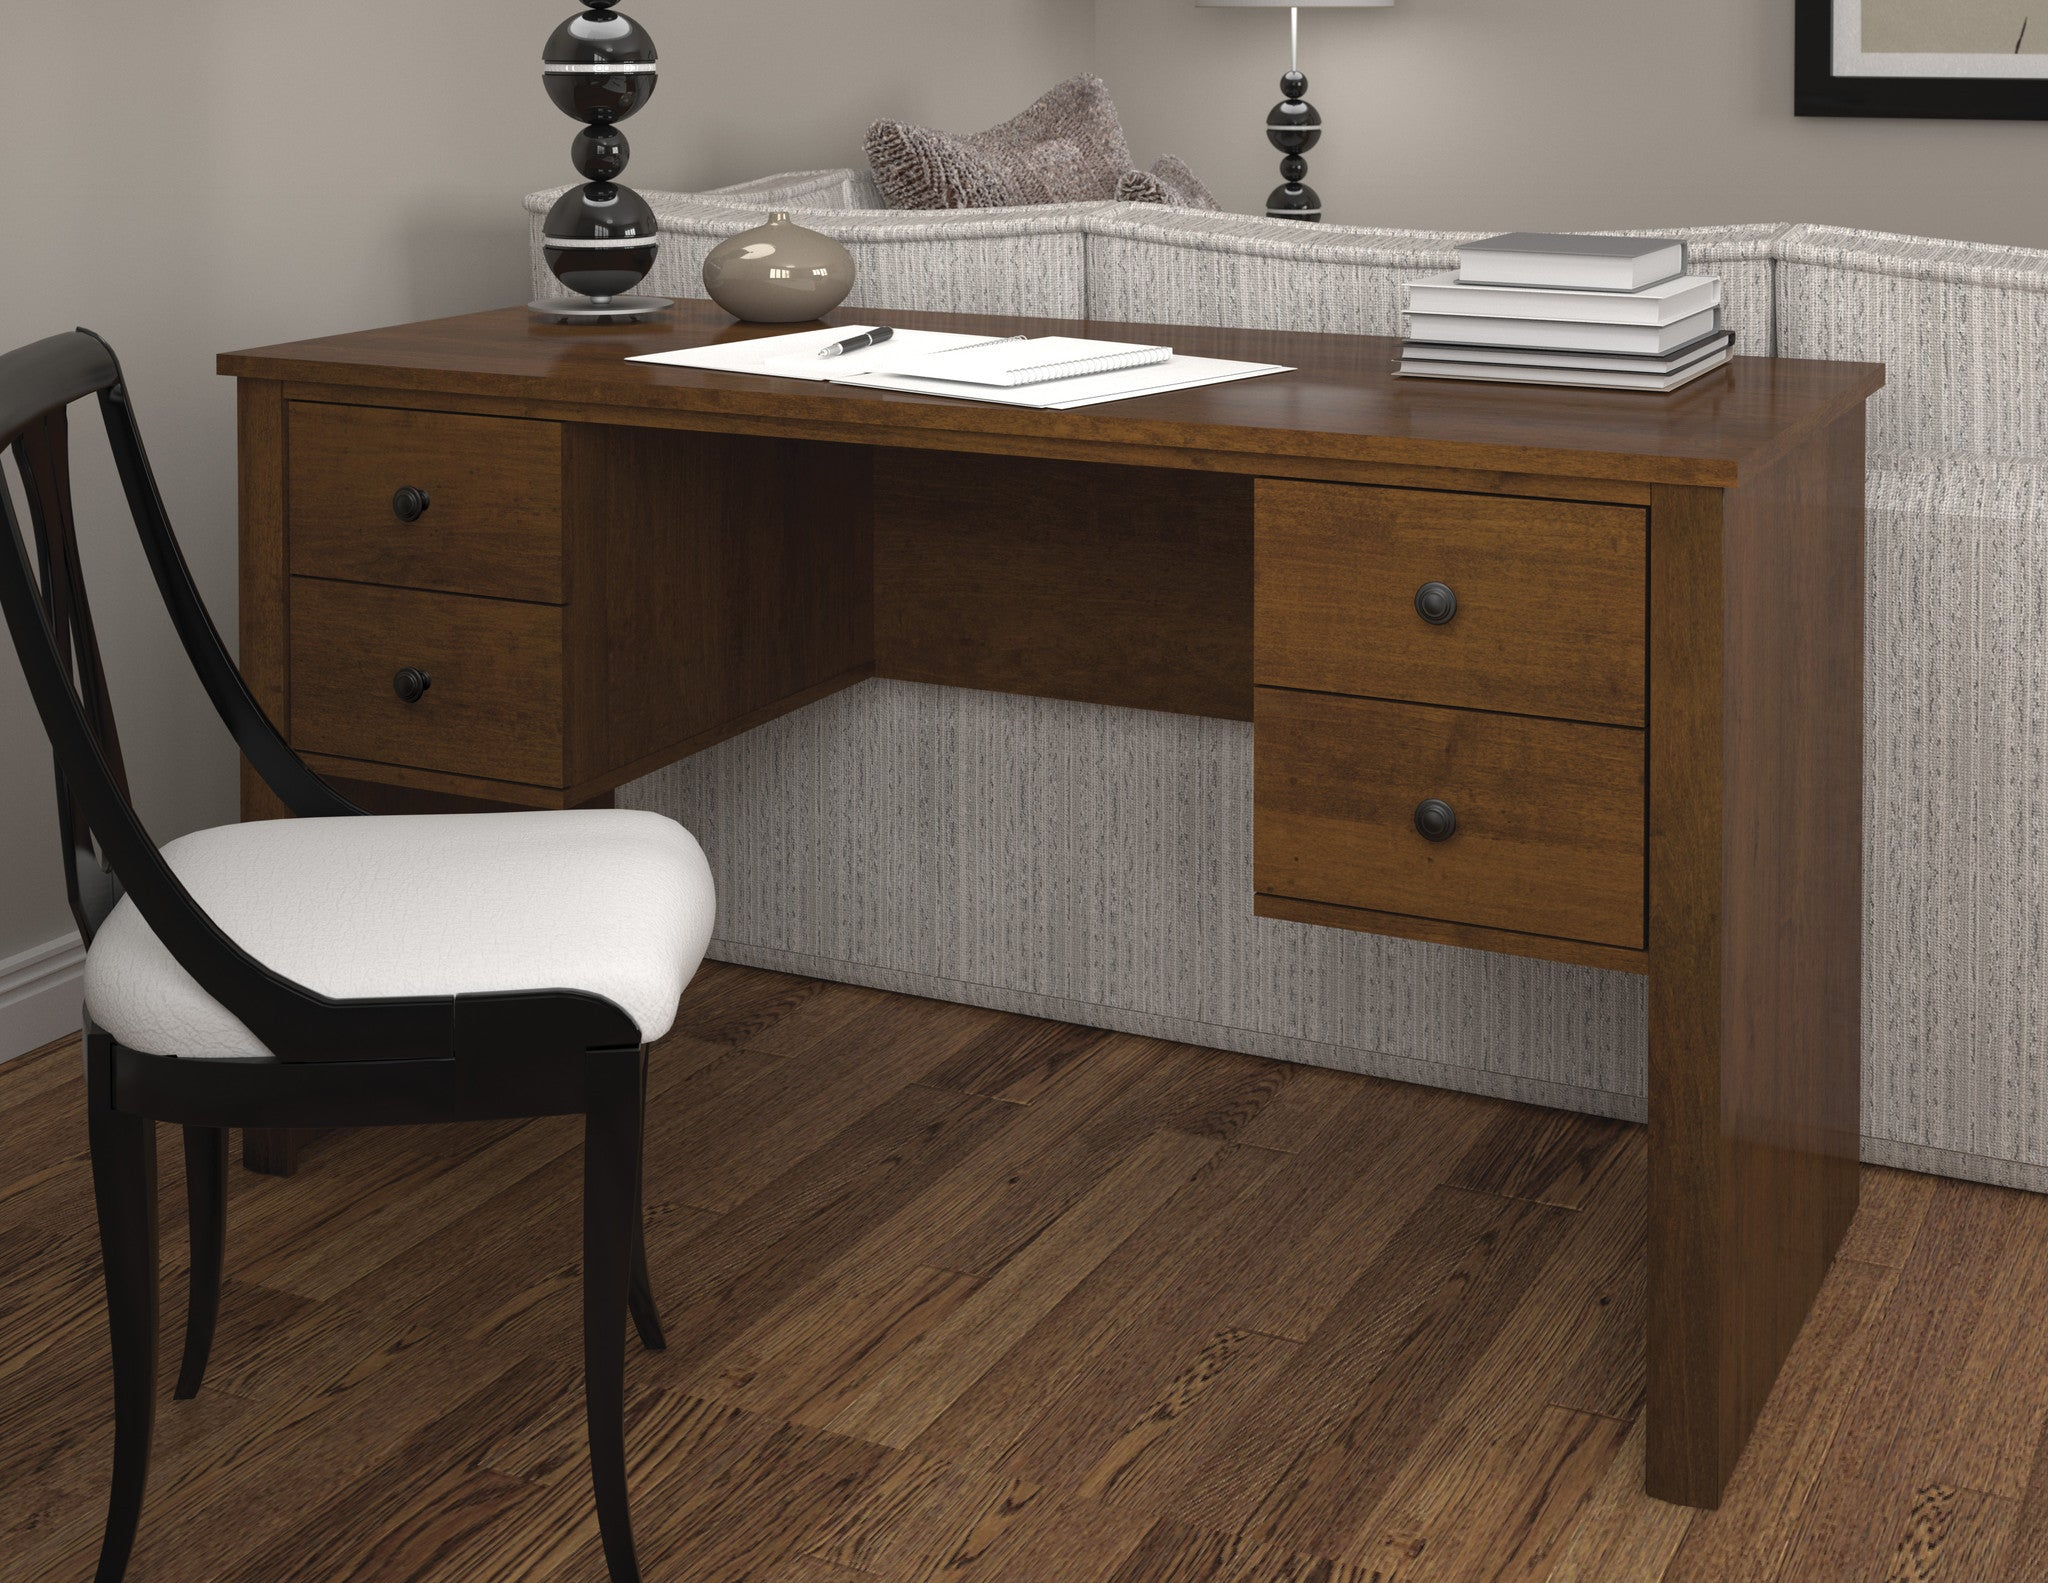 Somerville 4-Drawer Executive Desk in Tuscany Brown or Tuscany Brown & Black